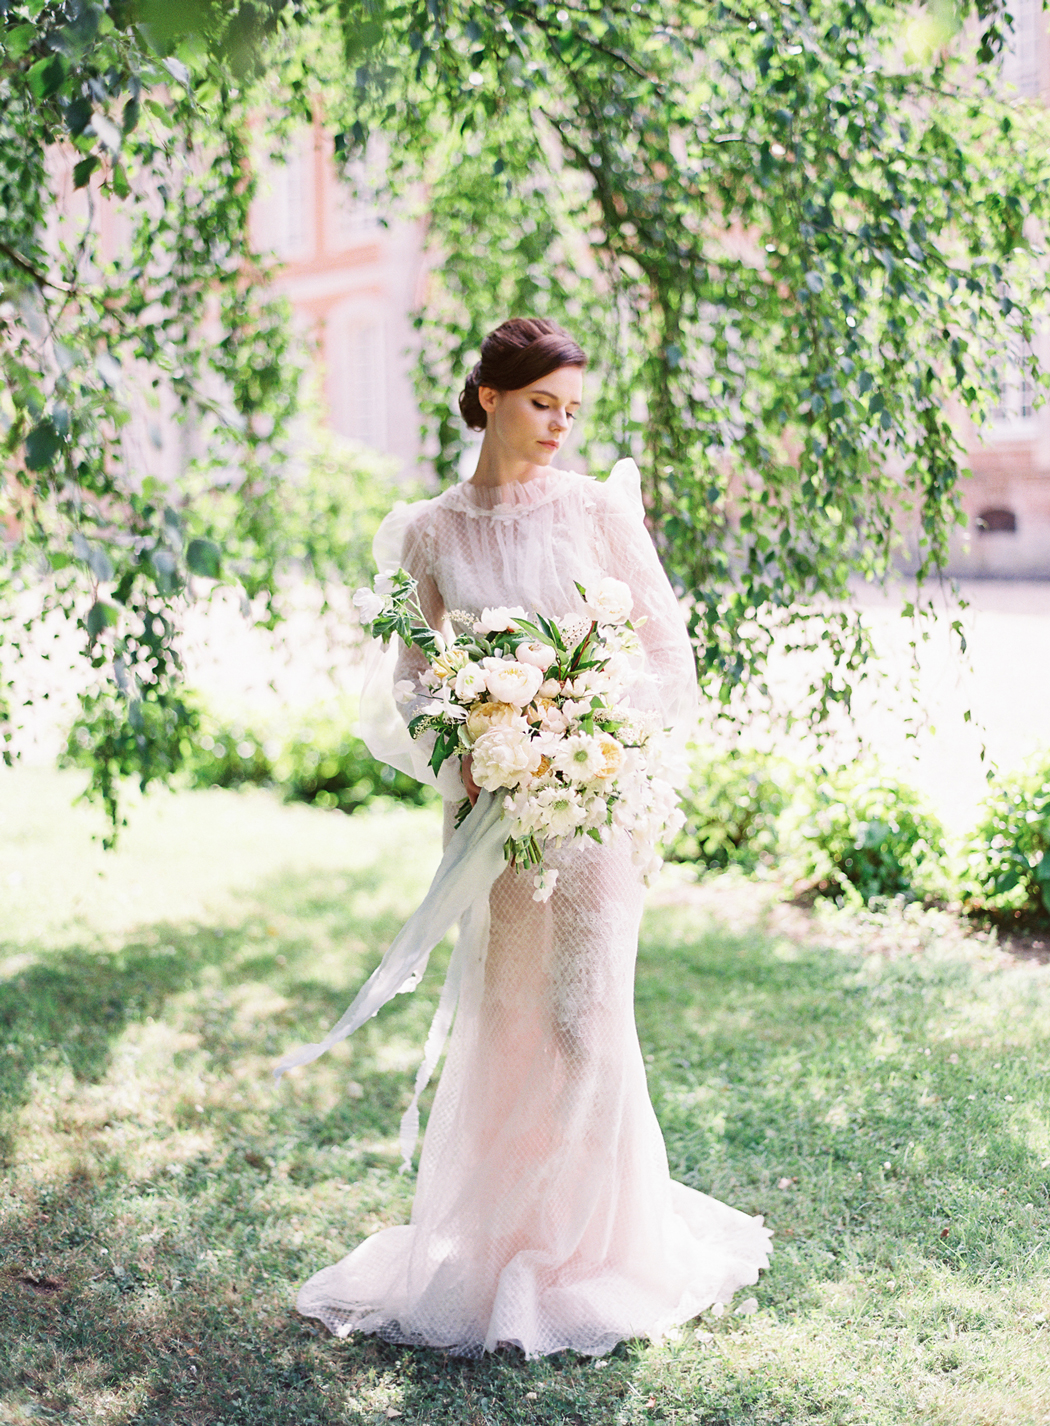 bride wearing high neck wedding dress